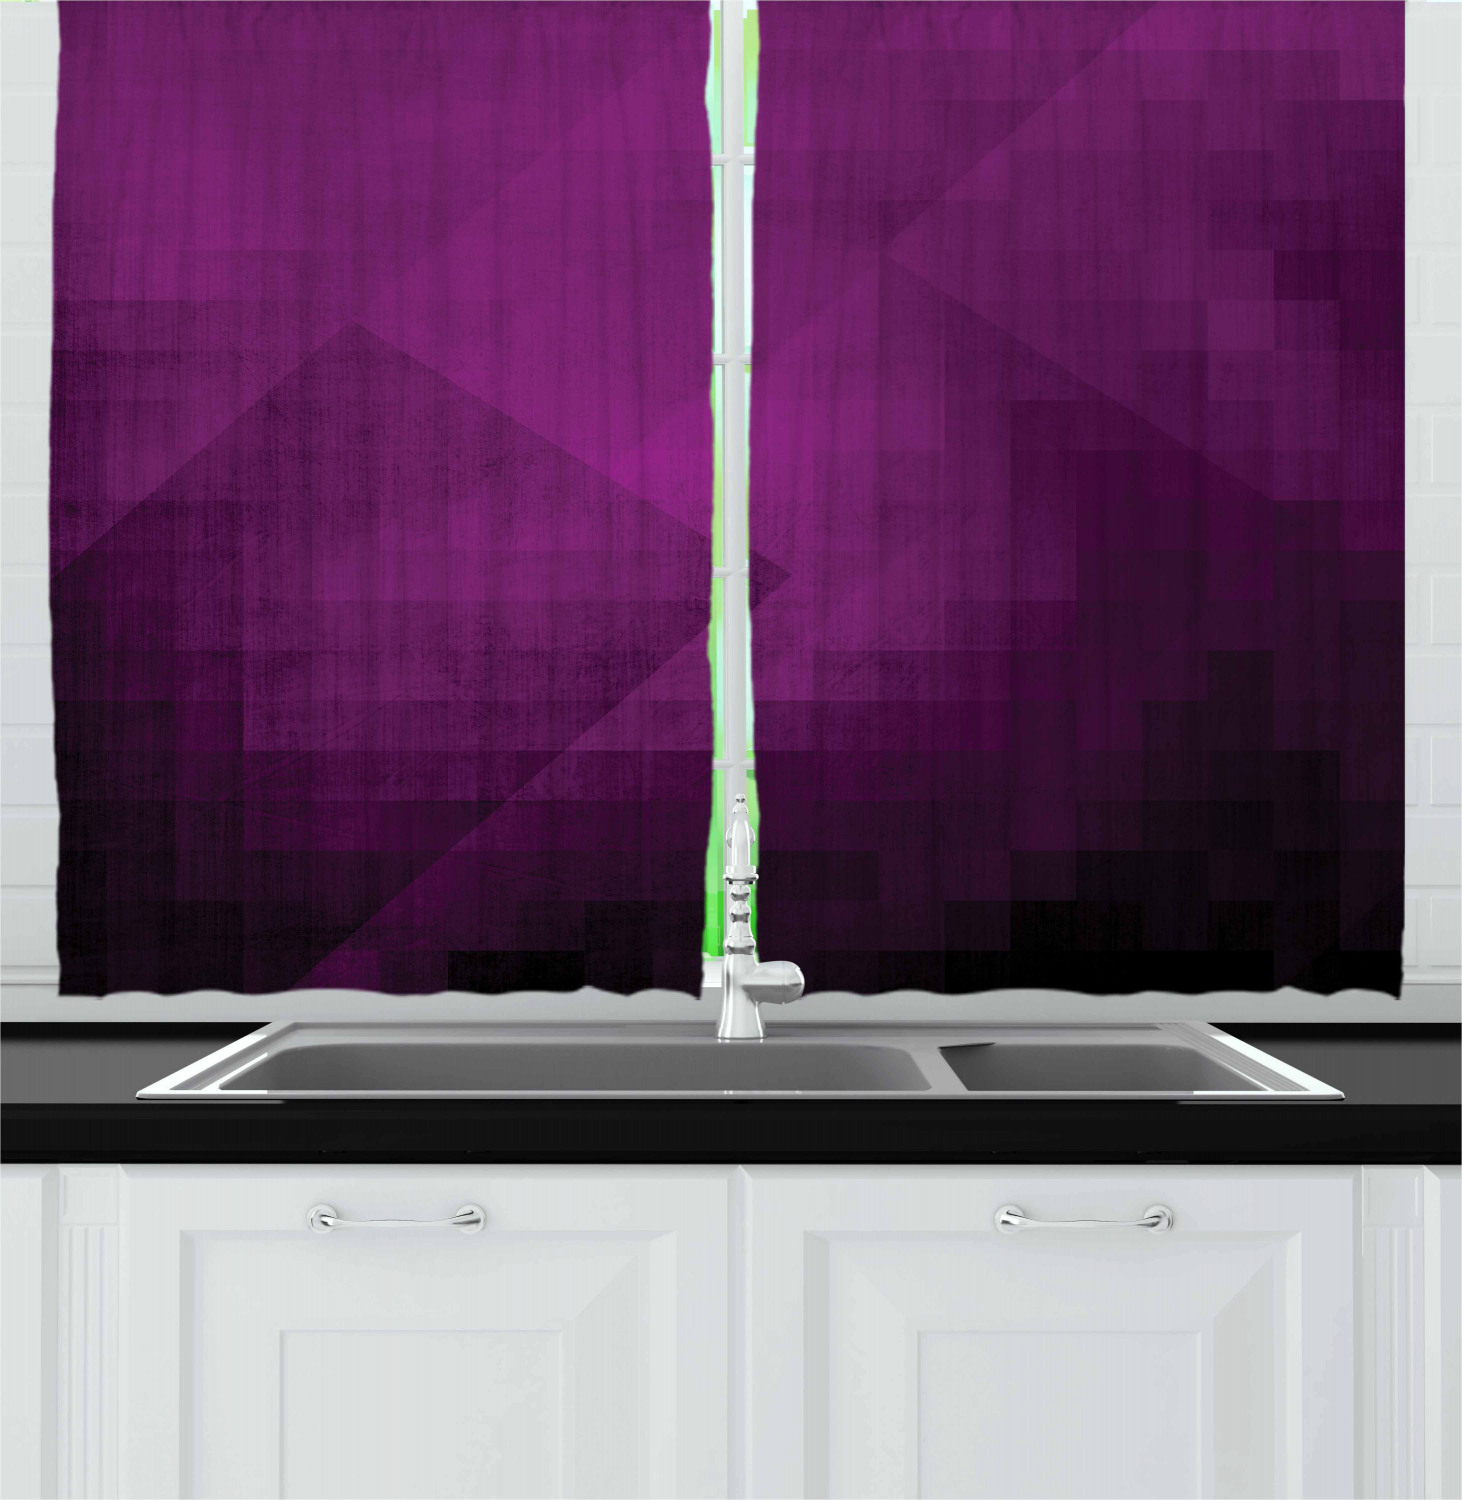 Eggplant Curtains 2 Panels Set Abstract Purple Squares In Faded Color Scheme With Modern Art Inspired Style Pixelart Window Drapes For Living Room Bedroom 55w X 39l Inches Purple By Ambesonne